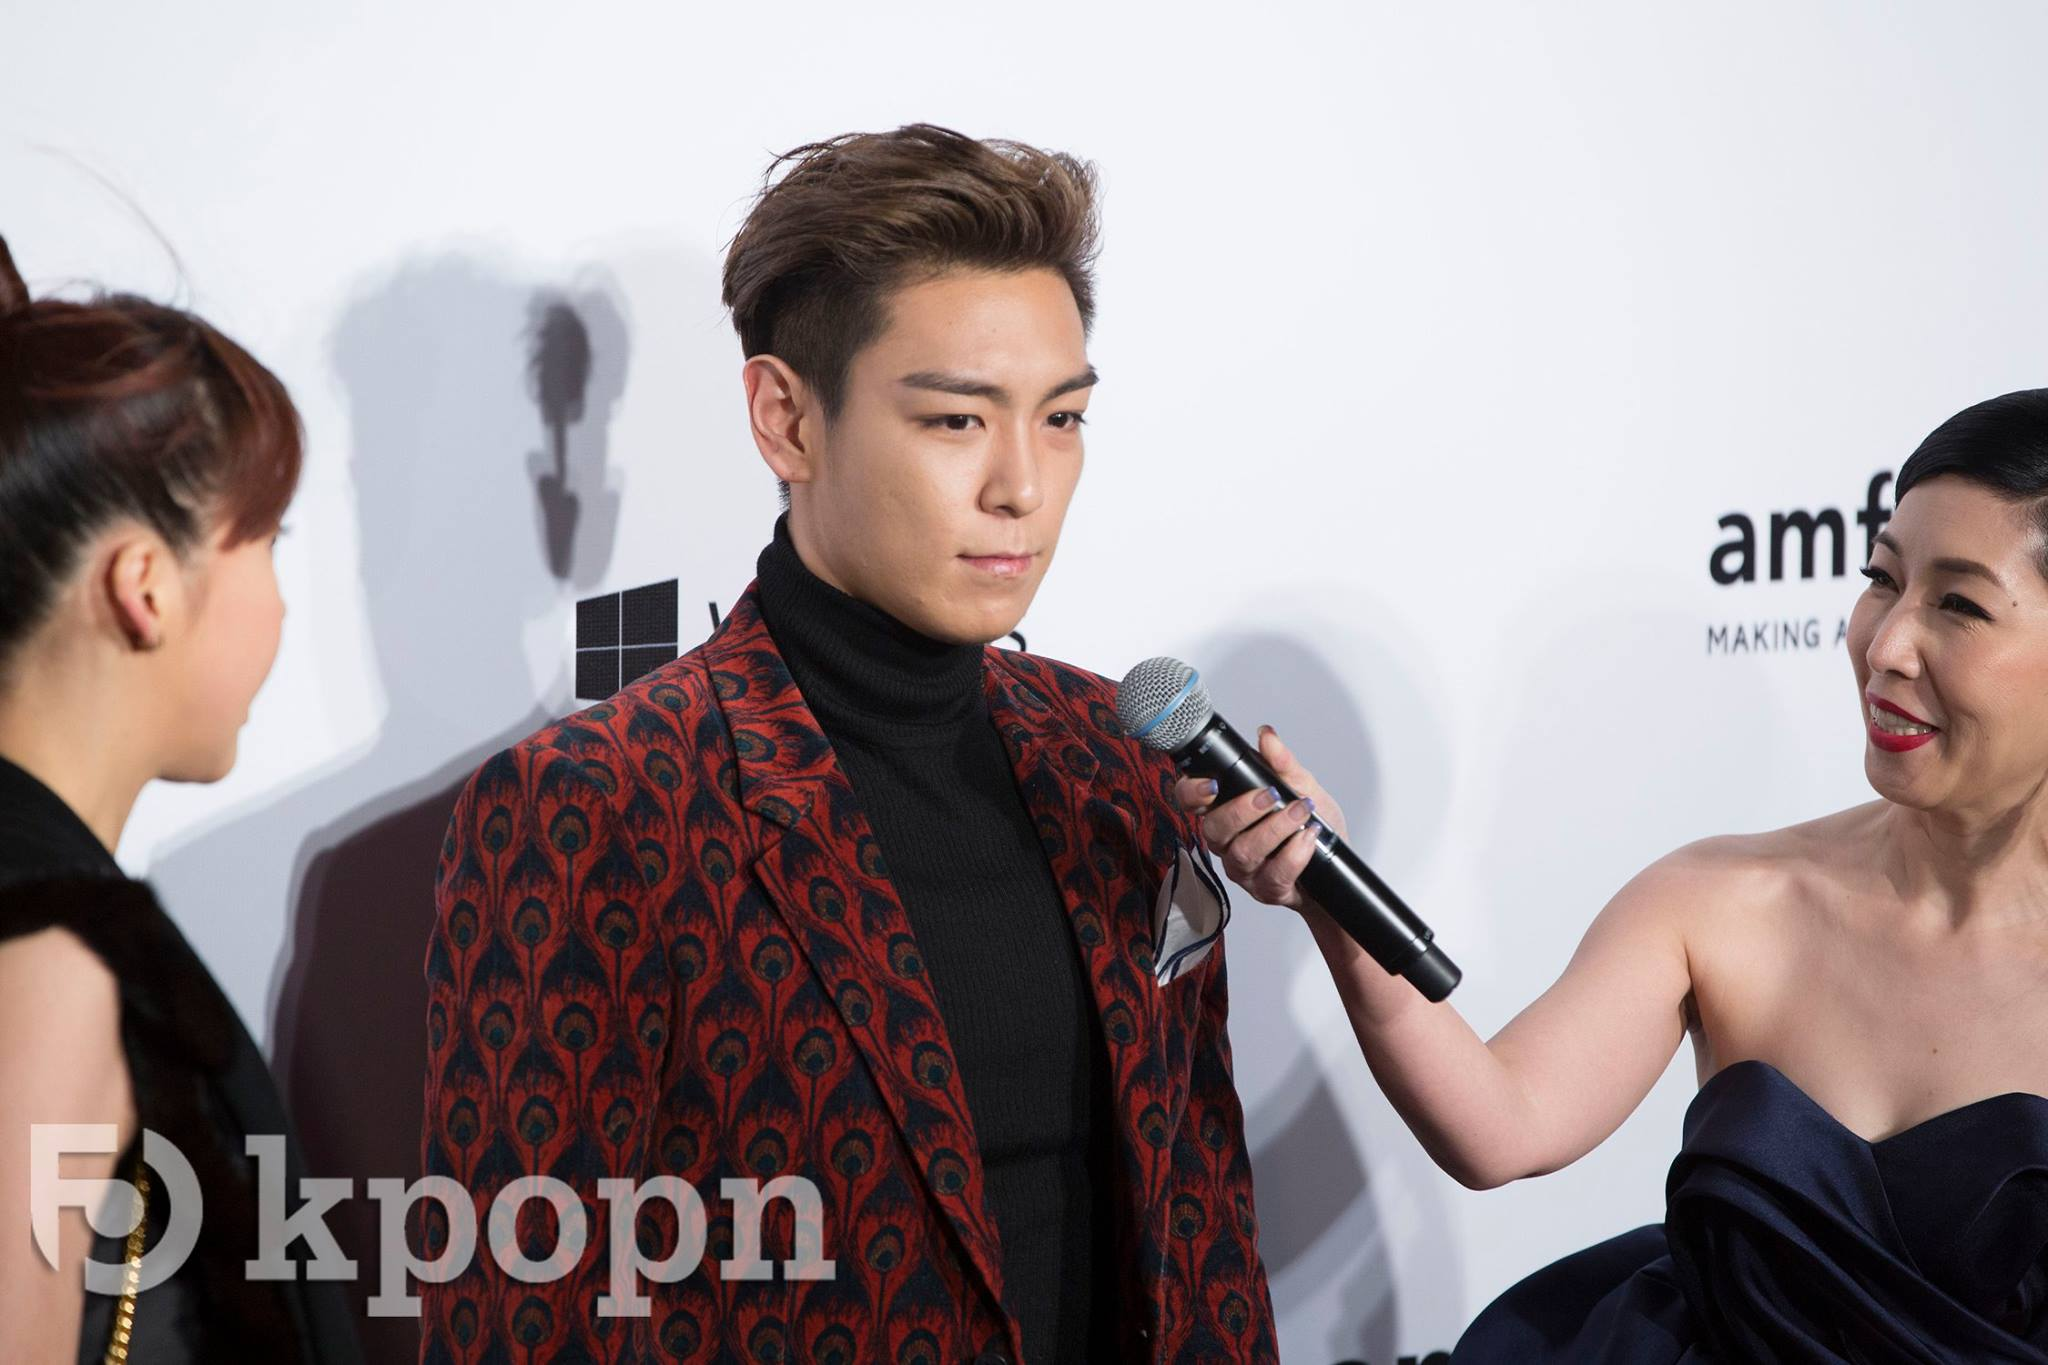 TOP amfAR Hong Kong by KPopcn 2015-03-14 012.jpg